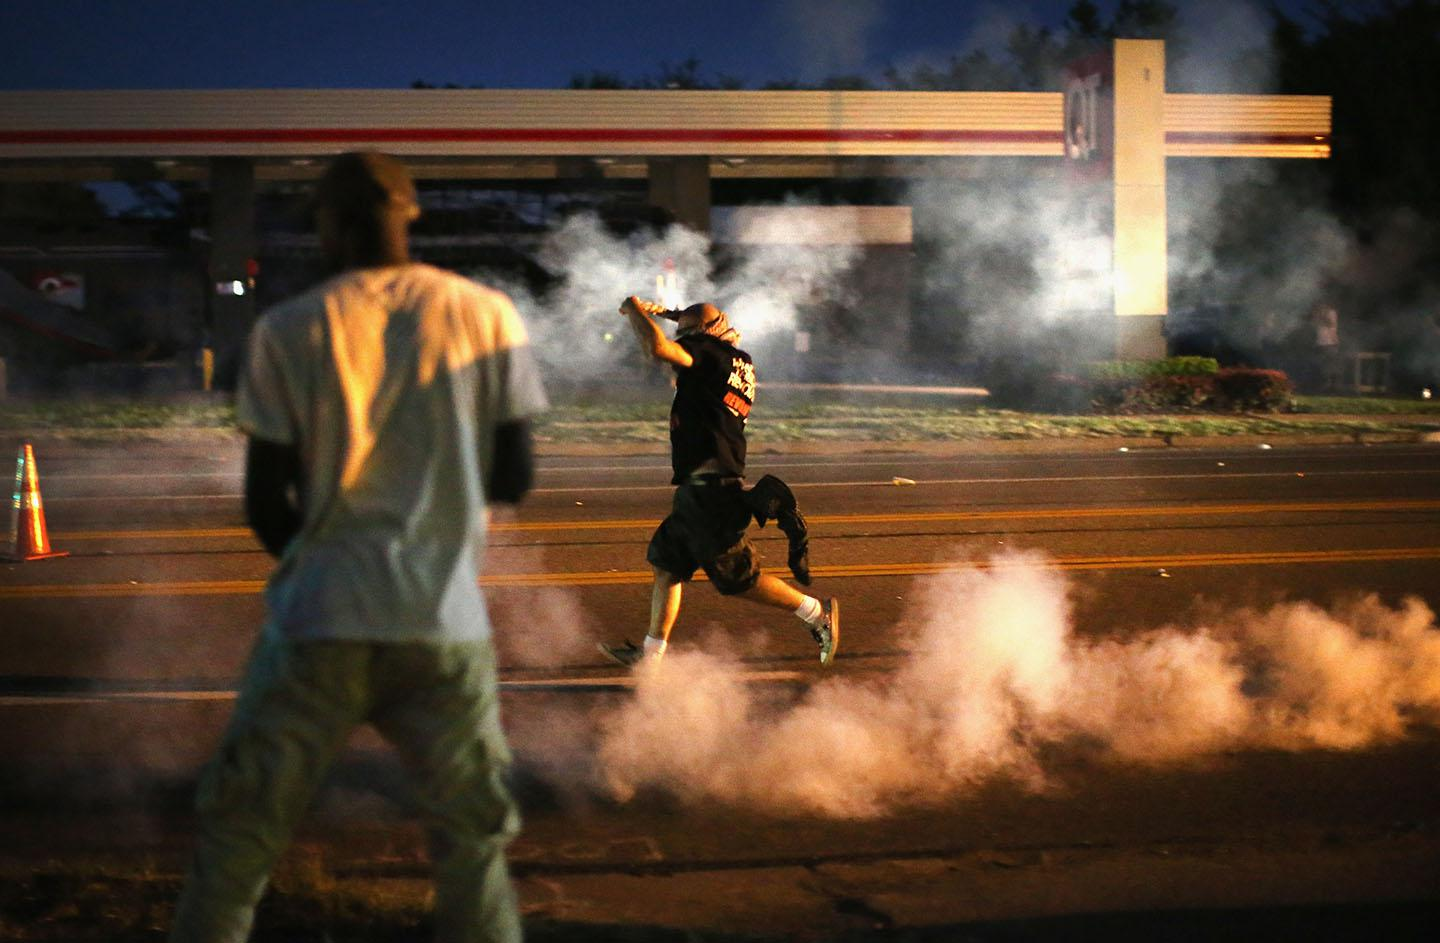 Demonstrators, protesting the shooting death of teenager Michael Brown, scramble for cover as police fire tear gas on August 13, 2014 in Ferguson, Missouri.